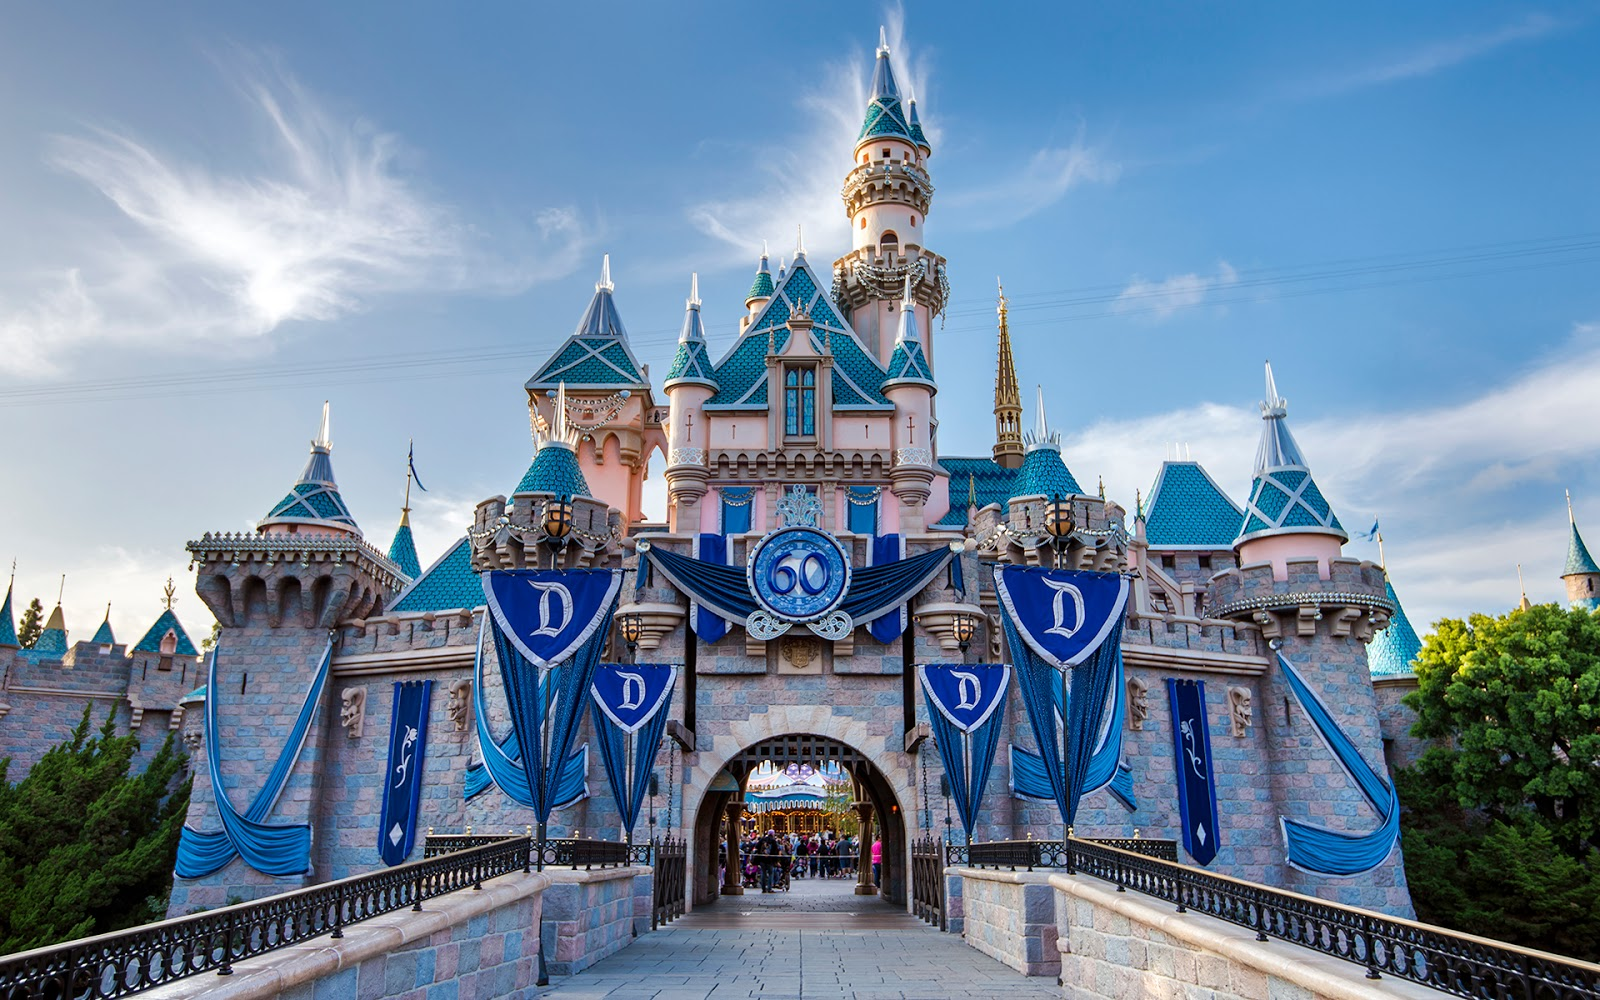 The 60th Anniversary Sleeping Beauty Castle fully decked out in its 1600x1000